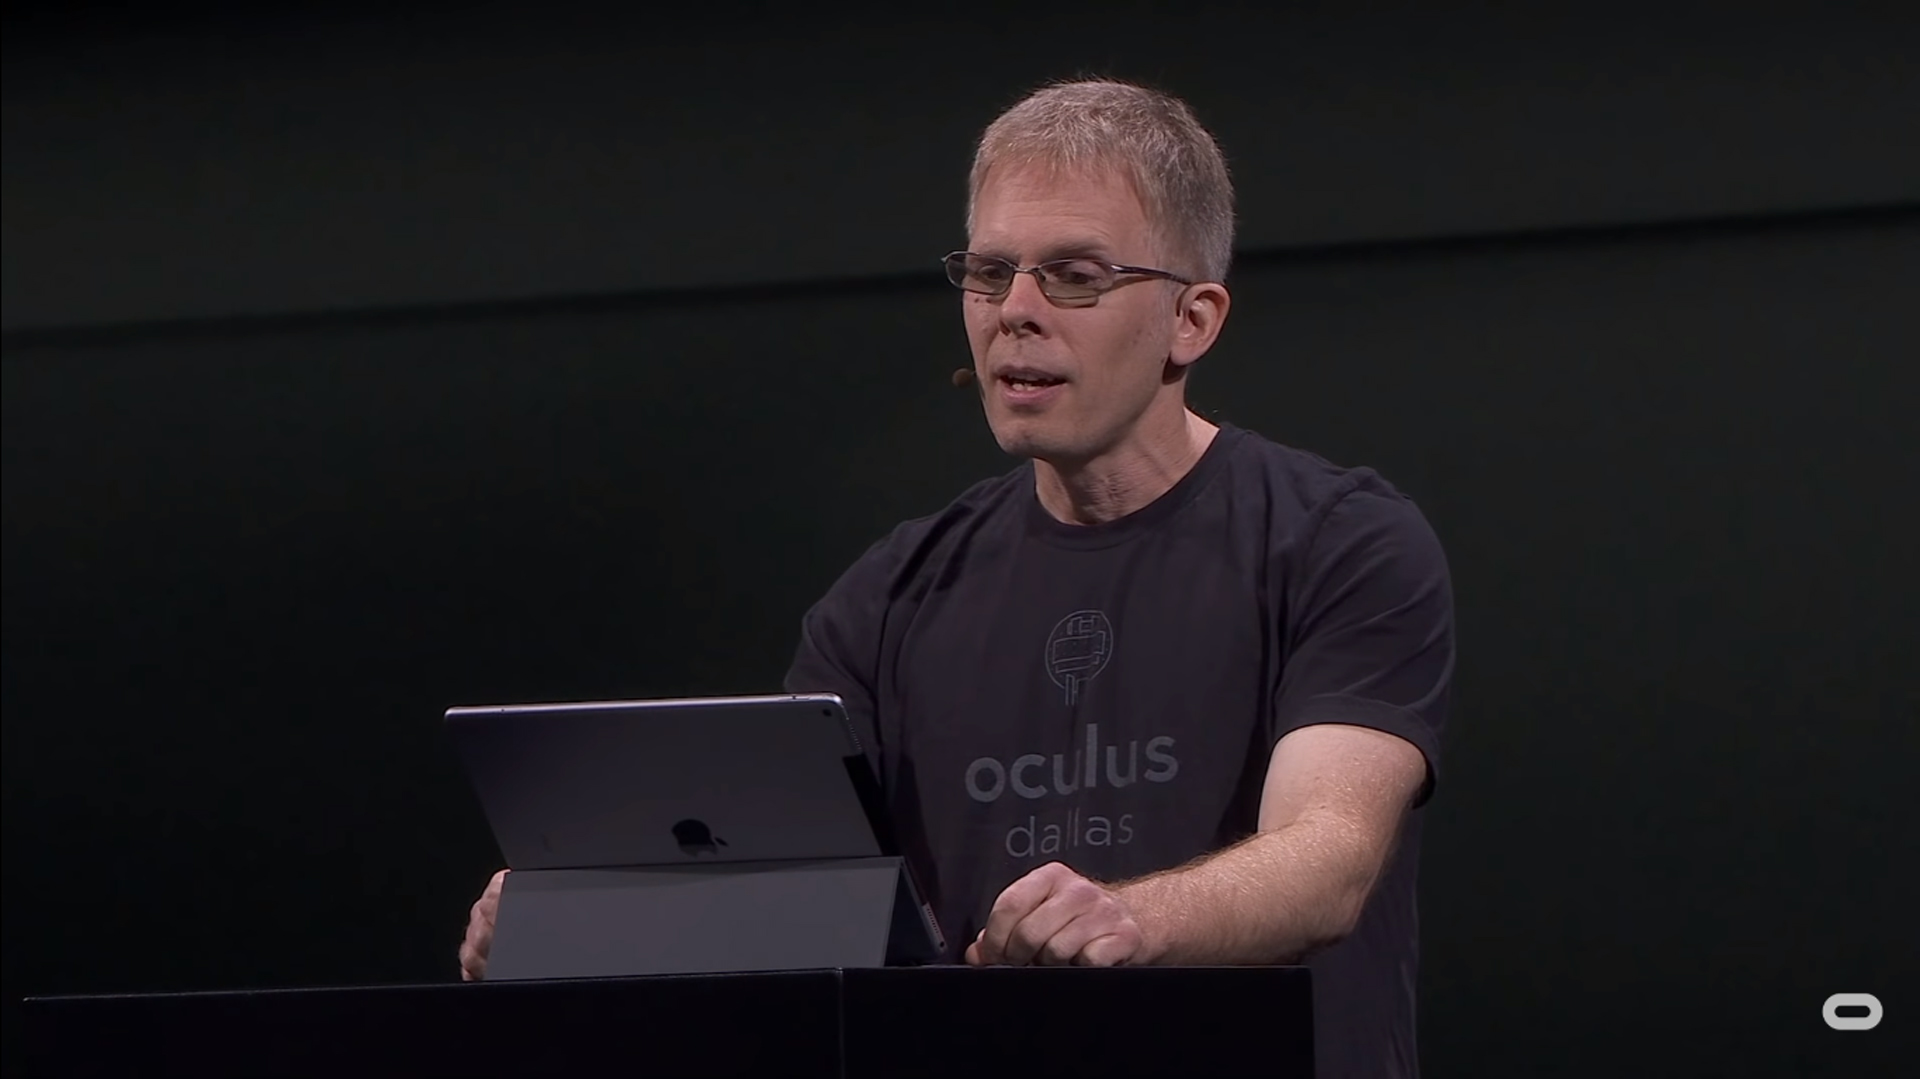 """Oculus CTO Wants Android Apps on Quest, But is """"not winning"""" the Debate Within Facebook - Road to VR"""